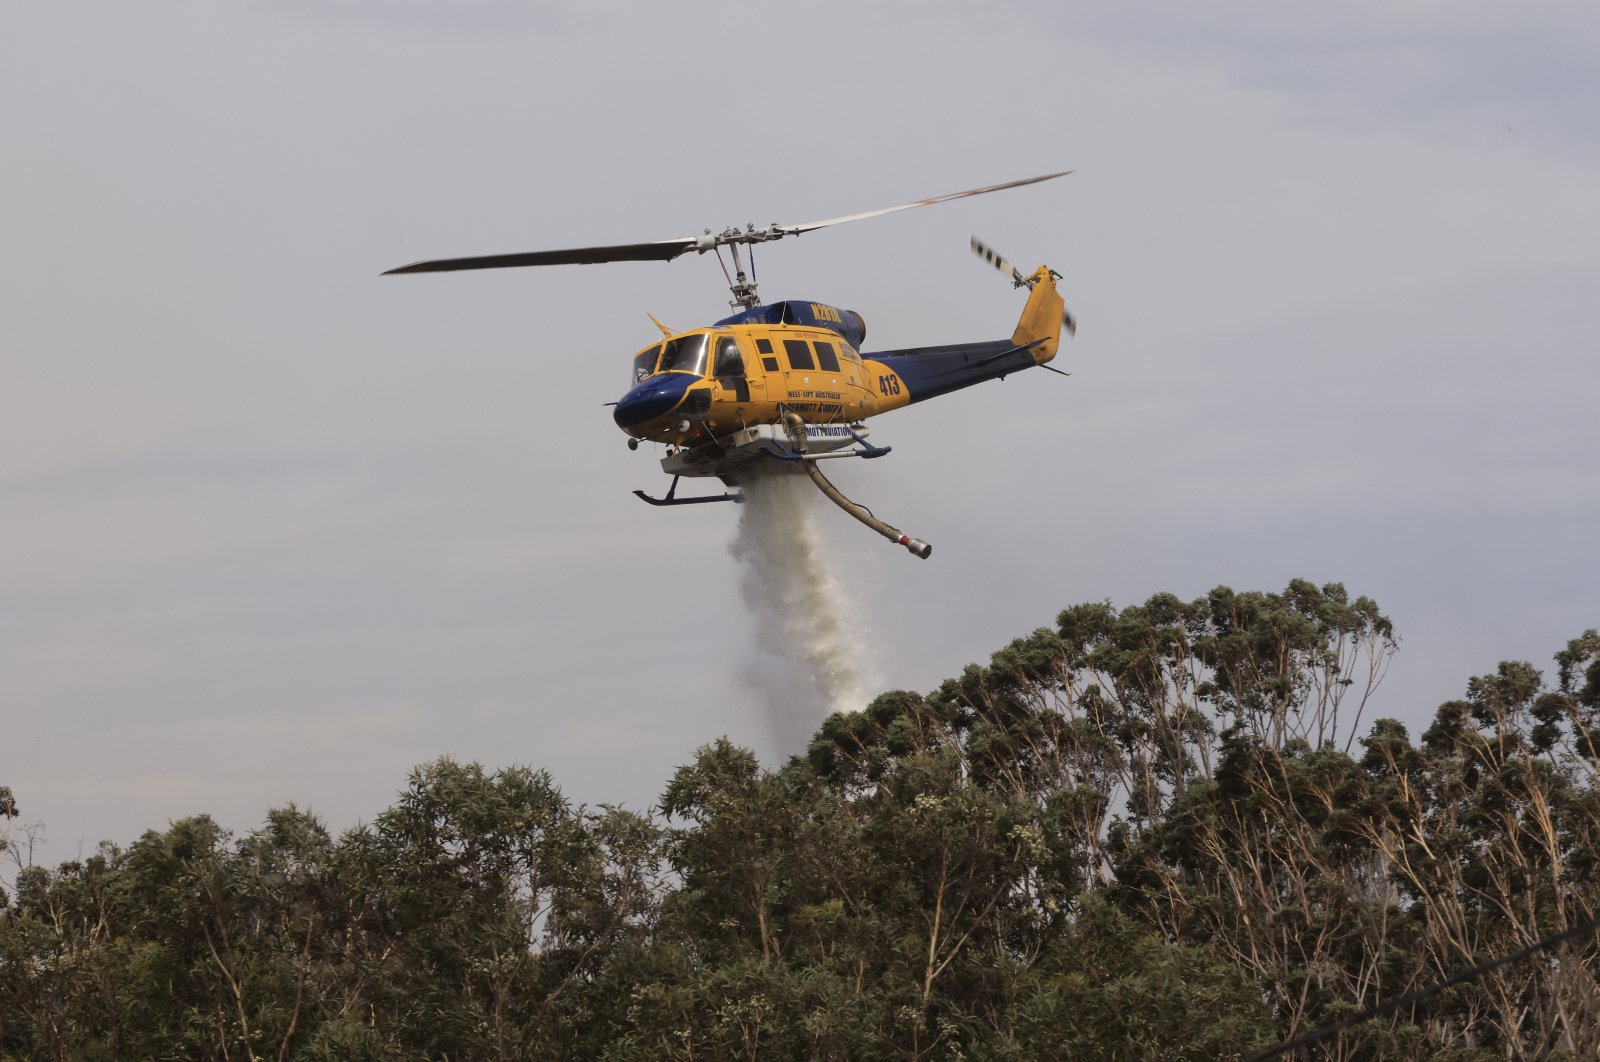 Helicopters are seen water bombing an out-of-control bushfire at Northmead in Sydney, Australia, Nov. 29, 2020. (Getty Images)